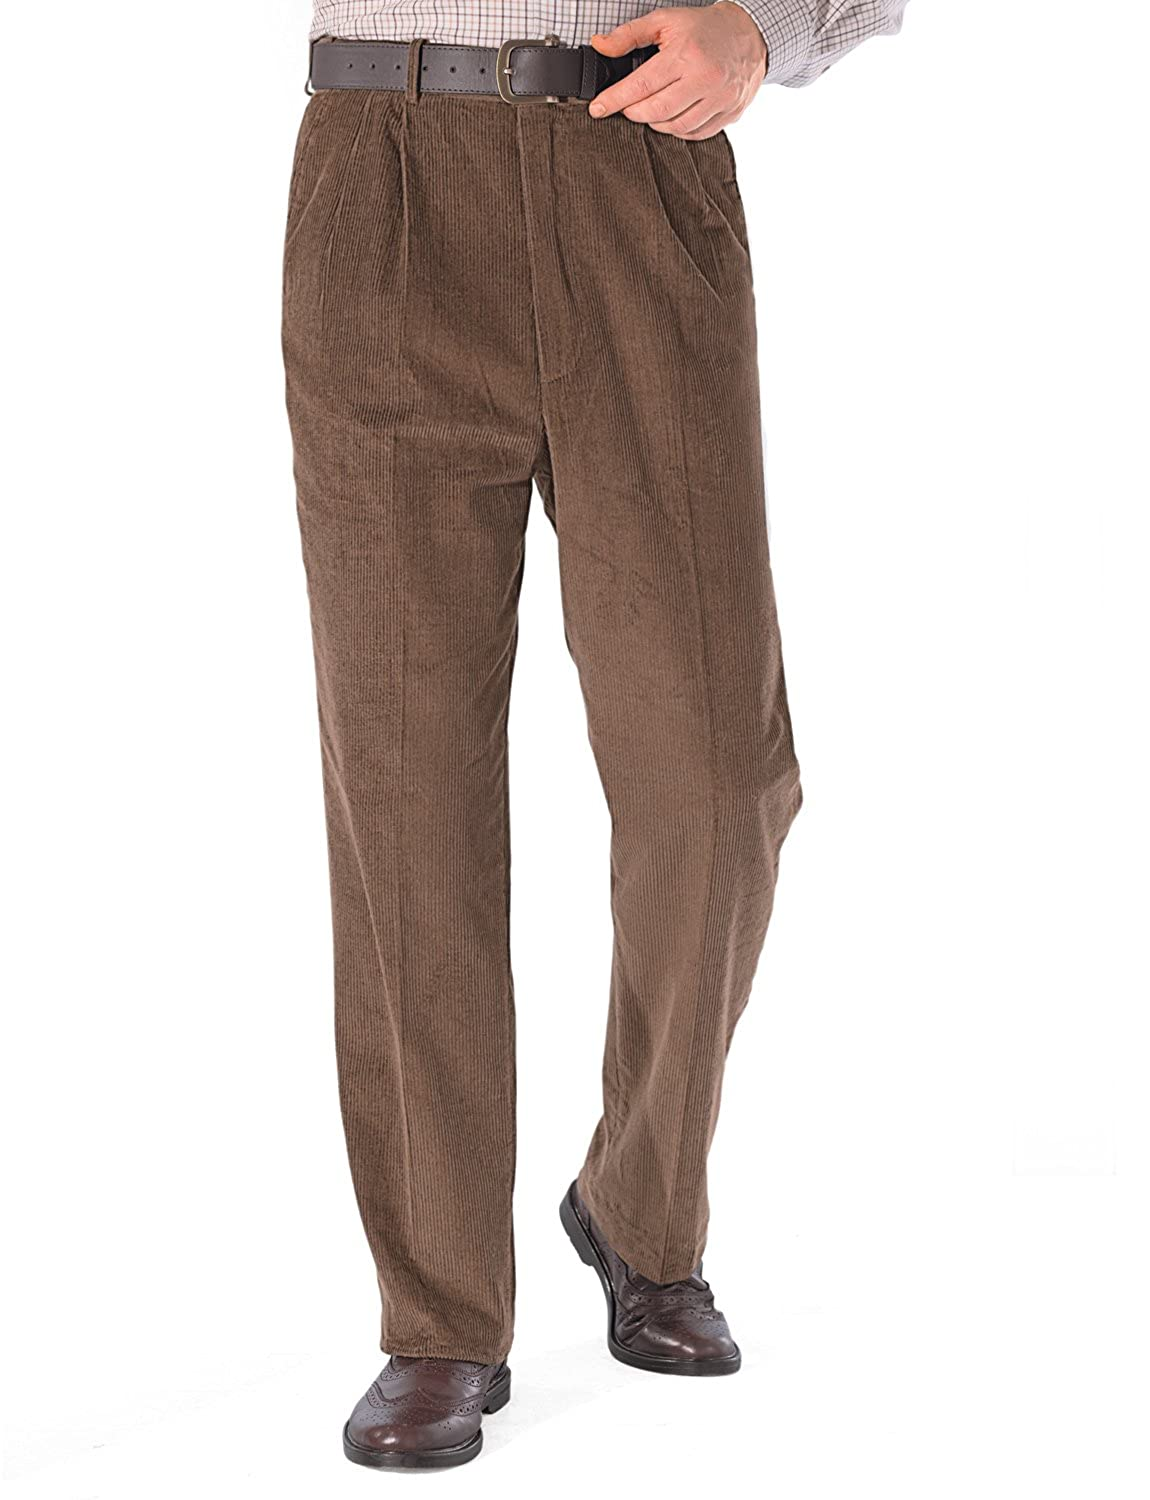 Mens Cord Trouser Corduroy Trousers Pure Cotton Big Sizes 30 to 62 ...